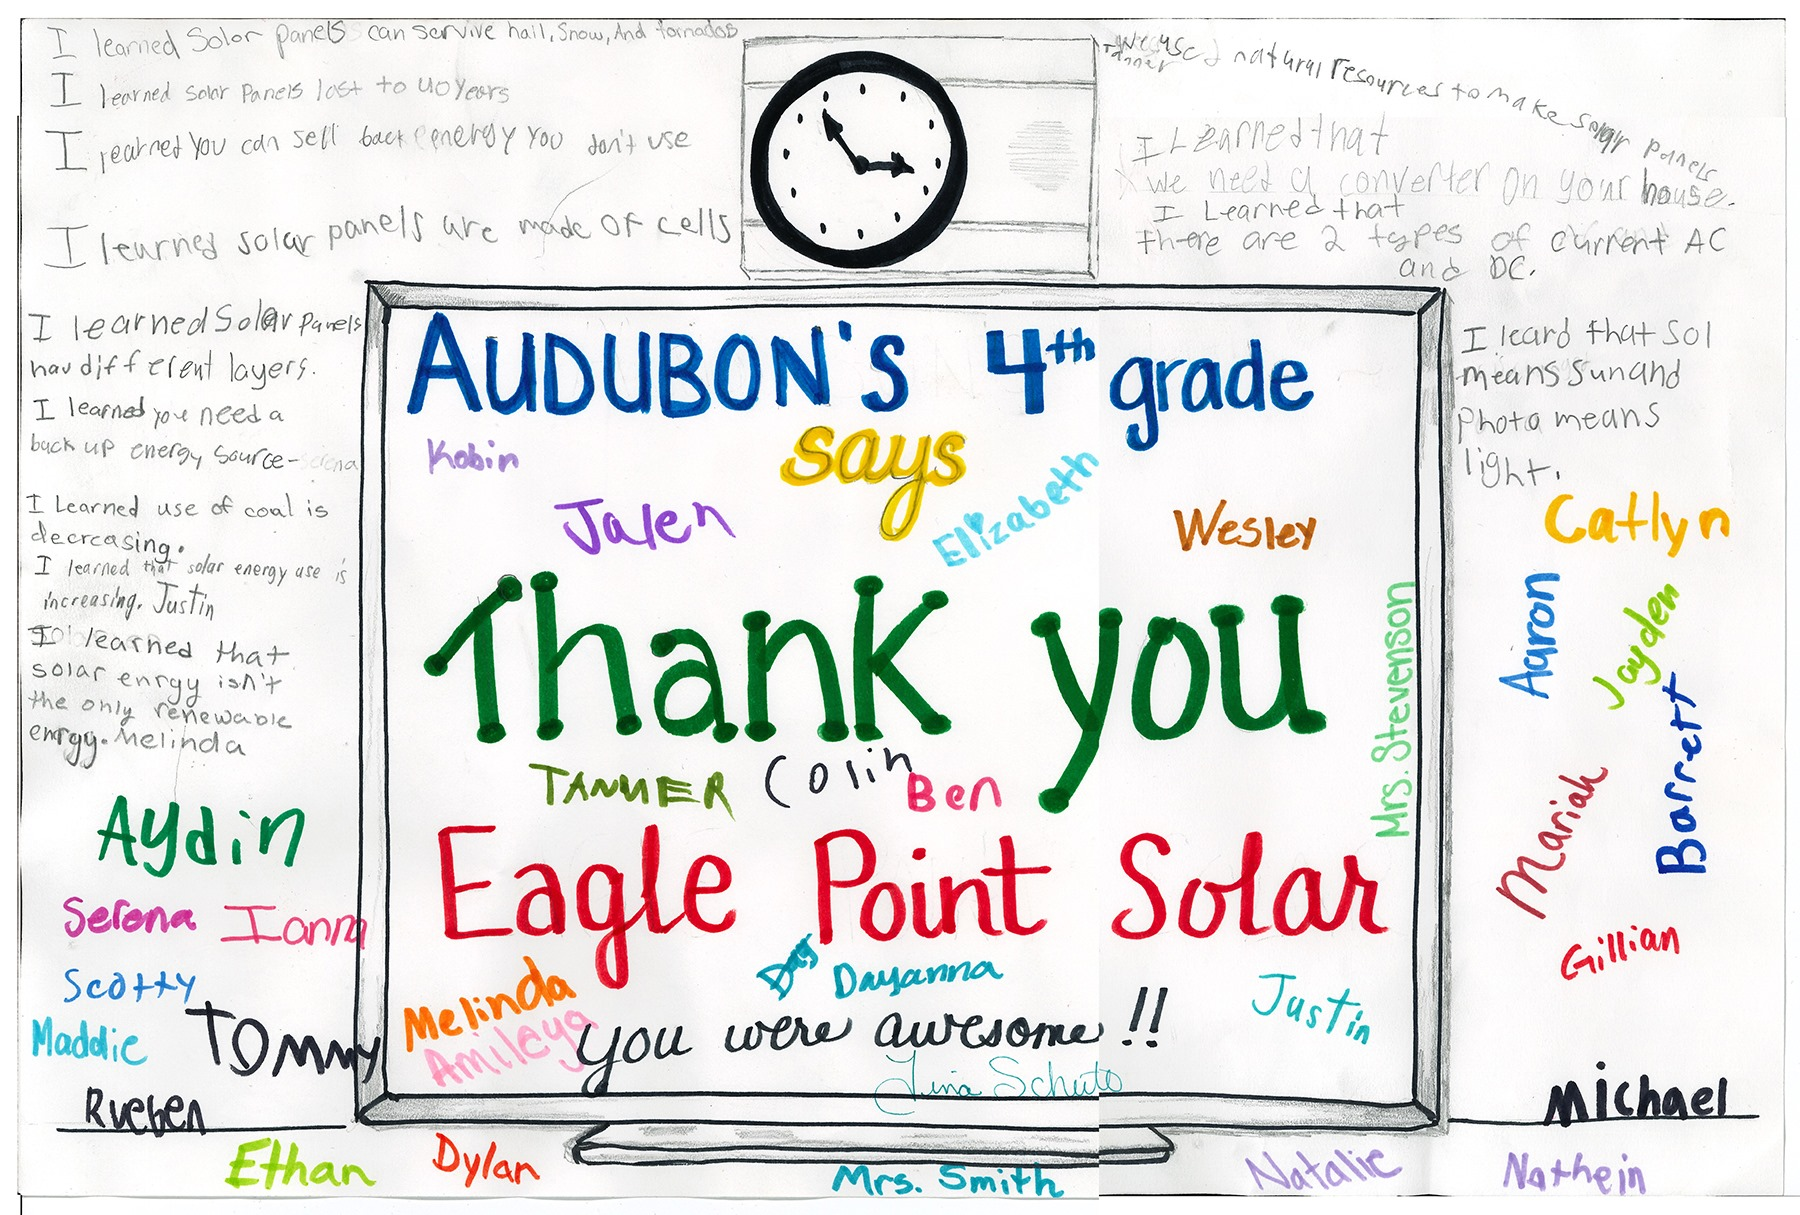 Photo of thank you from Audubon 4th grade students